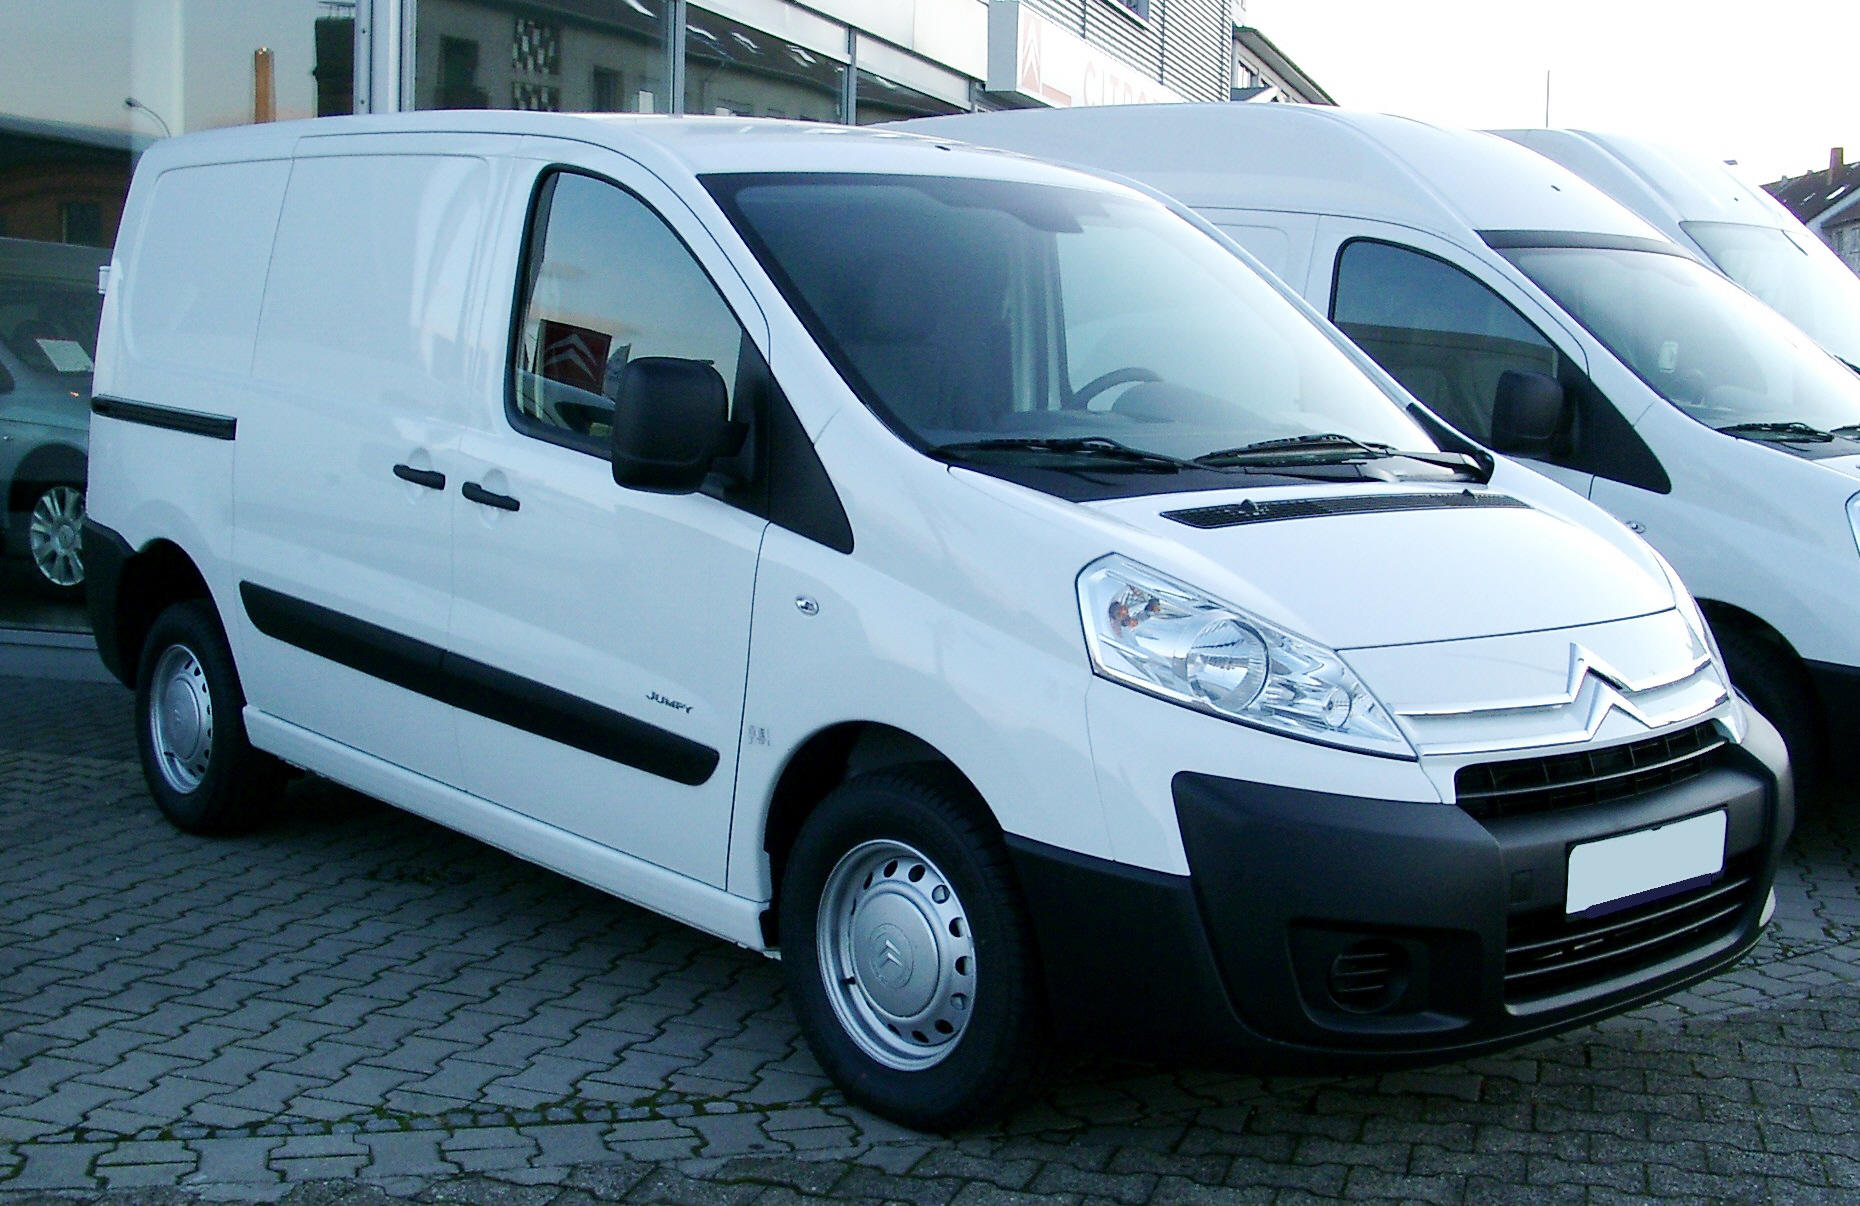 citroen jumpy van 140hp technical data fuel tank fuel consumption. Black Bedroom Furniture Sets. Home Design Ideas